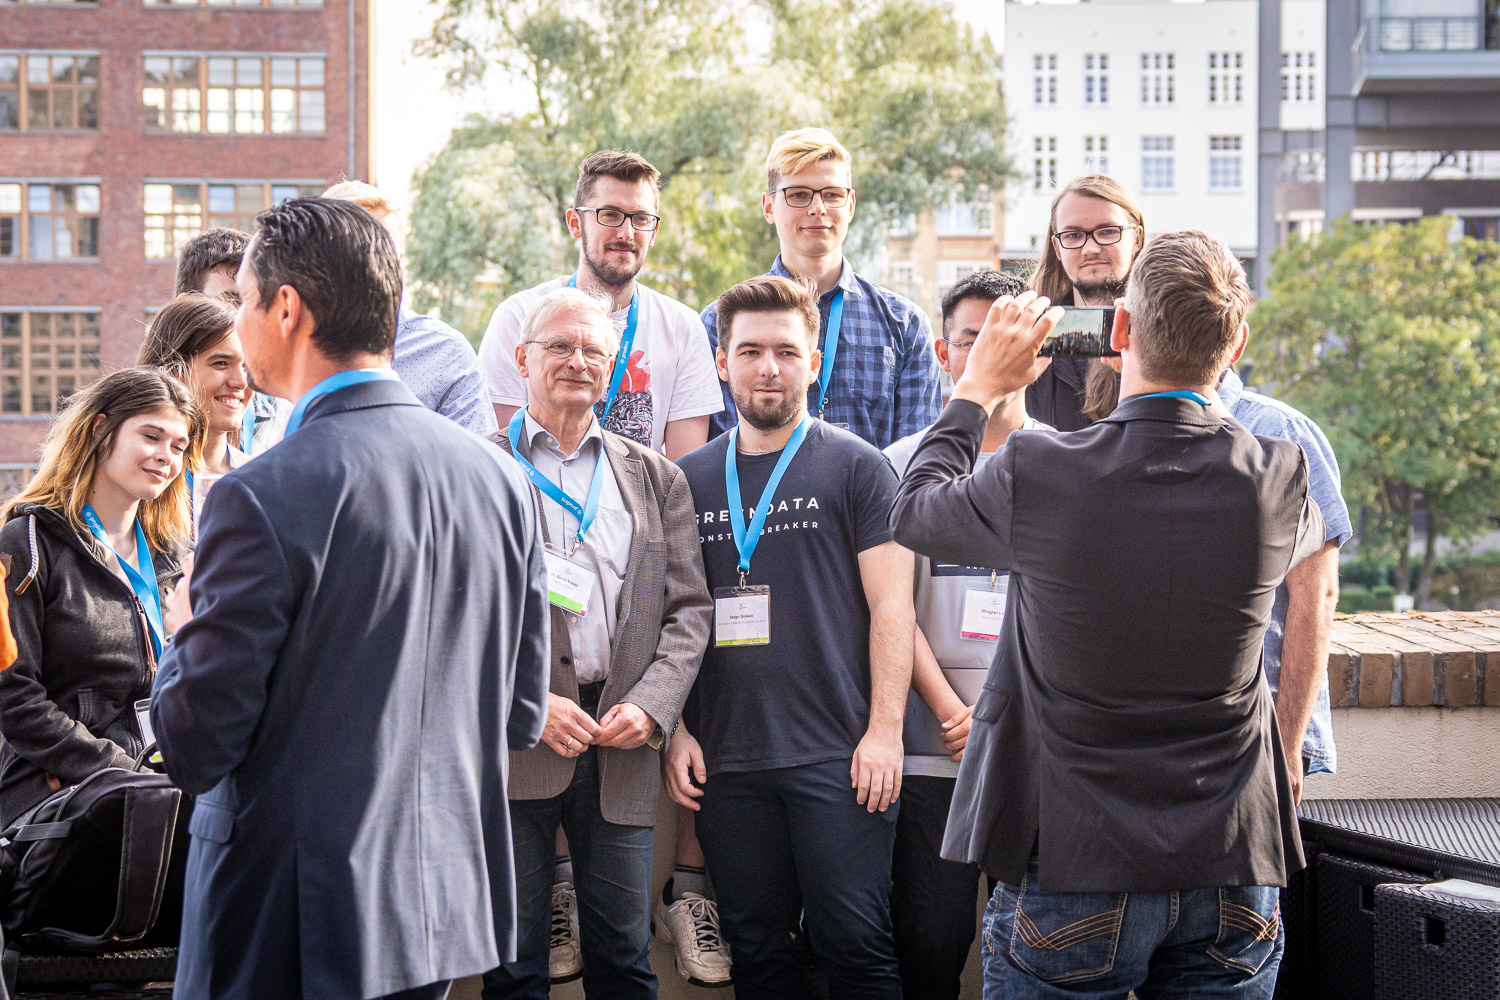 prudsys retail intelligence summit 2019 | Conference on AI in Retail | Team pictures